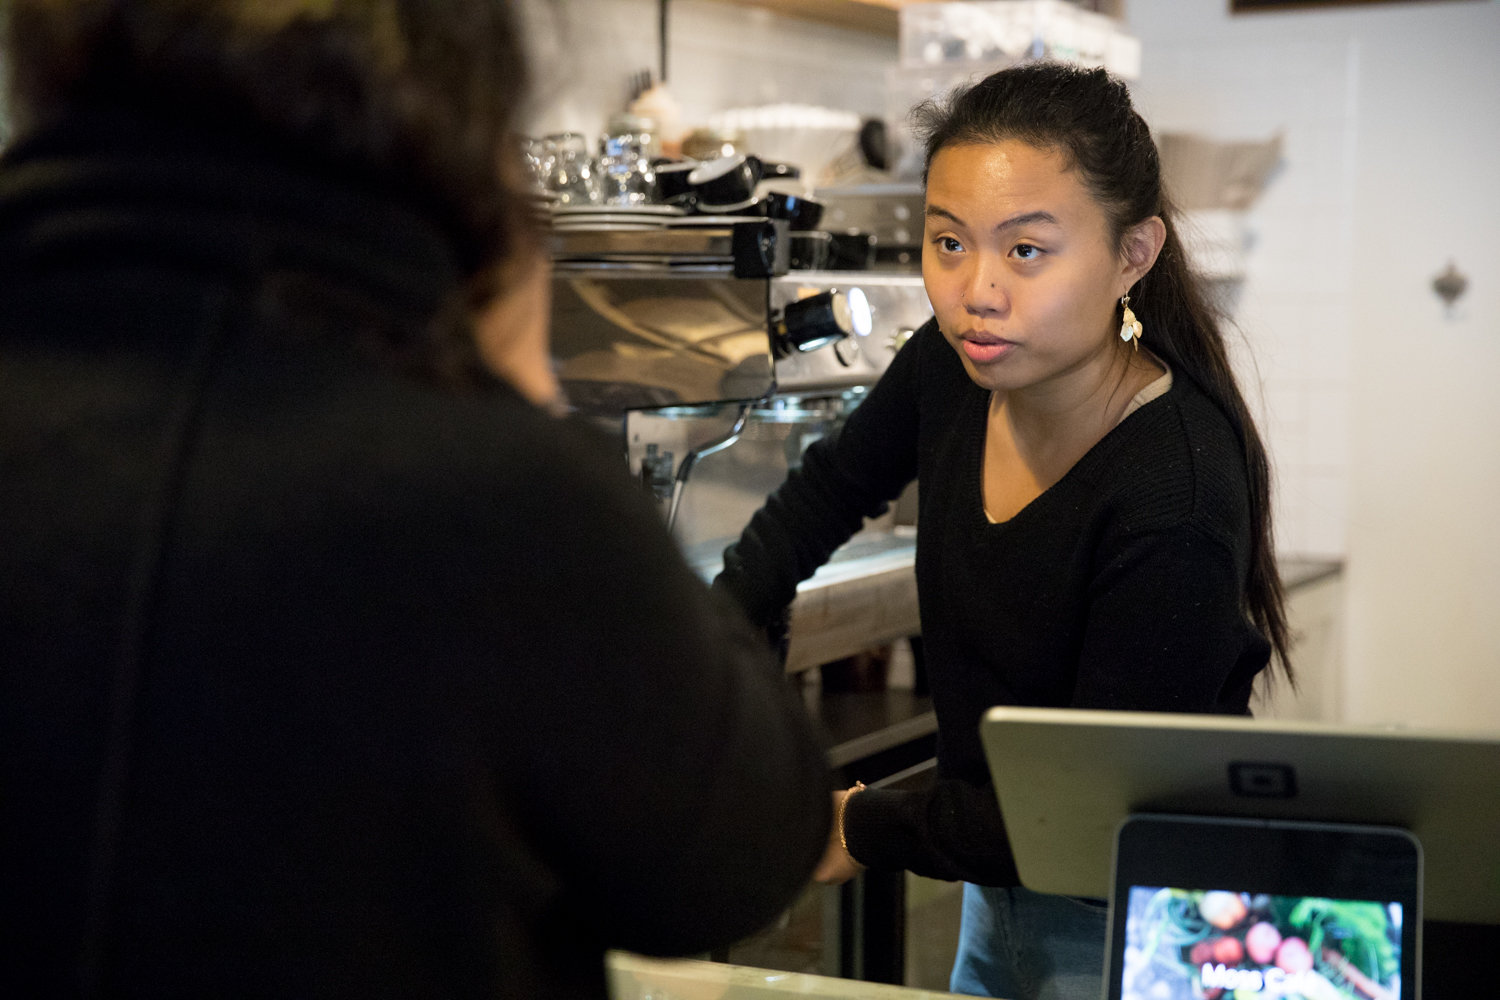 Solange Rizon helps a customer at Moss Cafe. The Johnson Avenue eatery employs approximately 25 people, which means it's been subject to the $15 minimum wage since last year. Owner Emily Weisberg has looked to cut costs where possible to ensure her employees get paid properly.